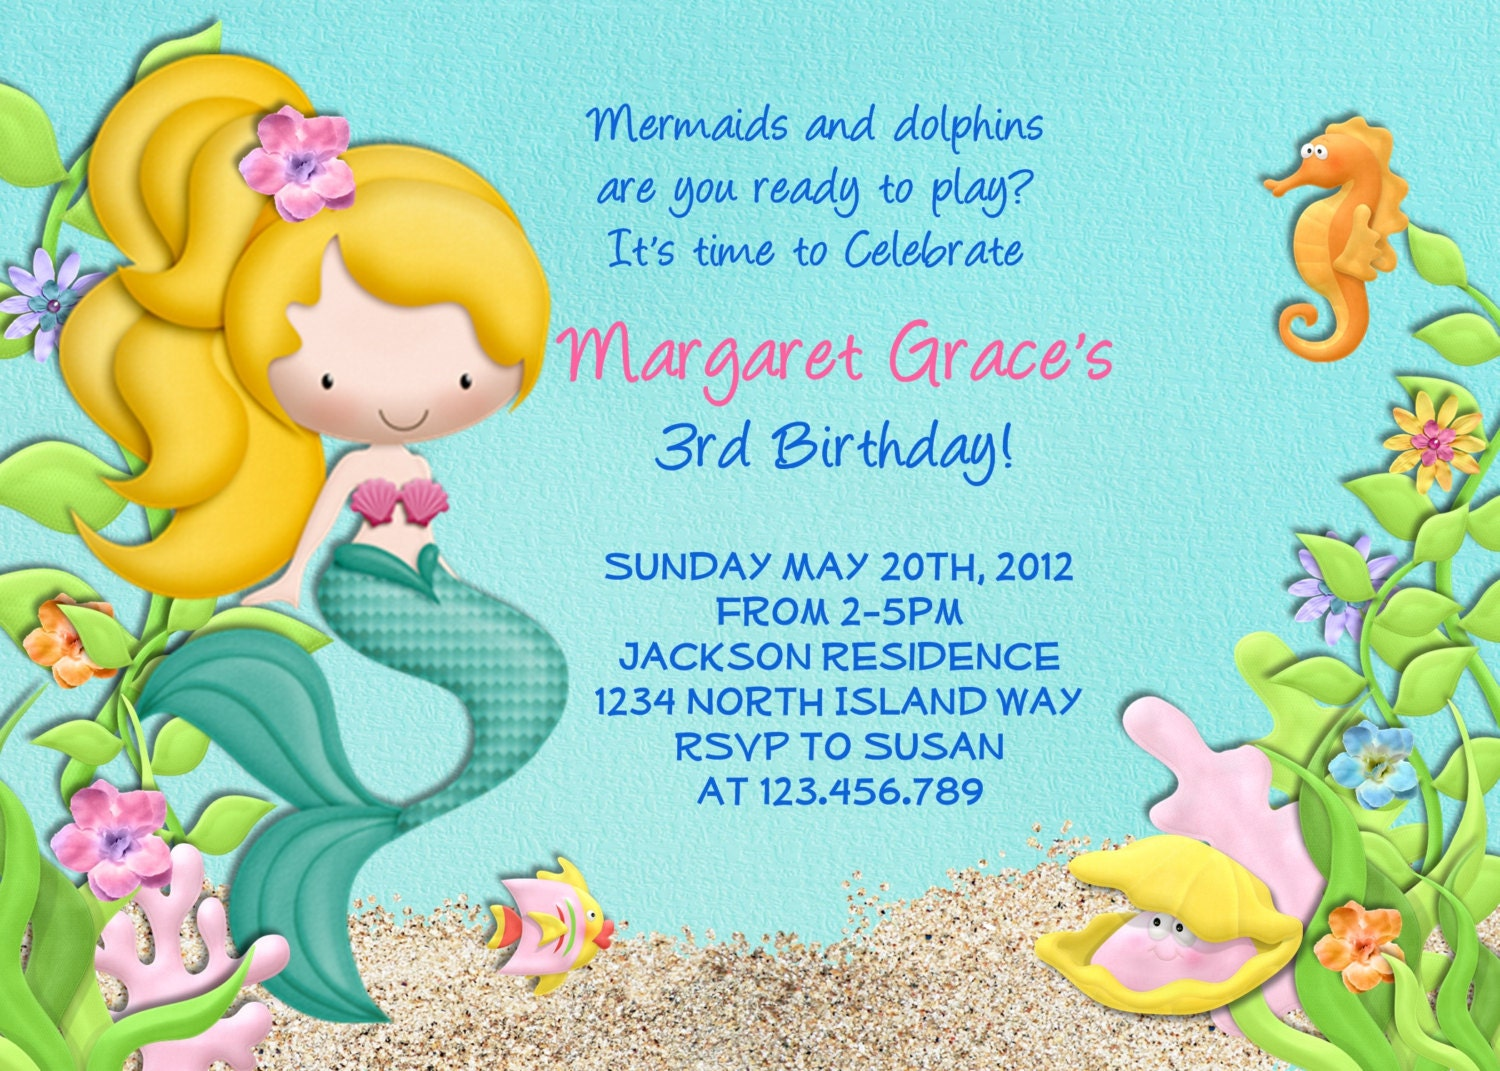 Mermaid Birthday Party Invitations is awesome invitations design